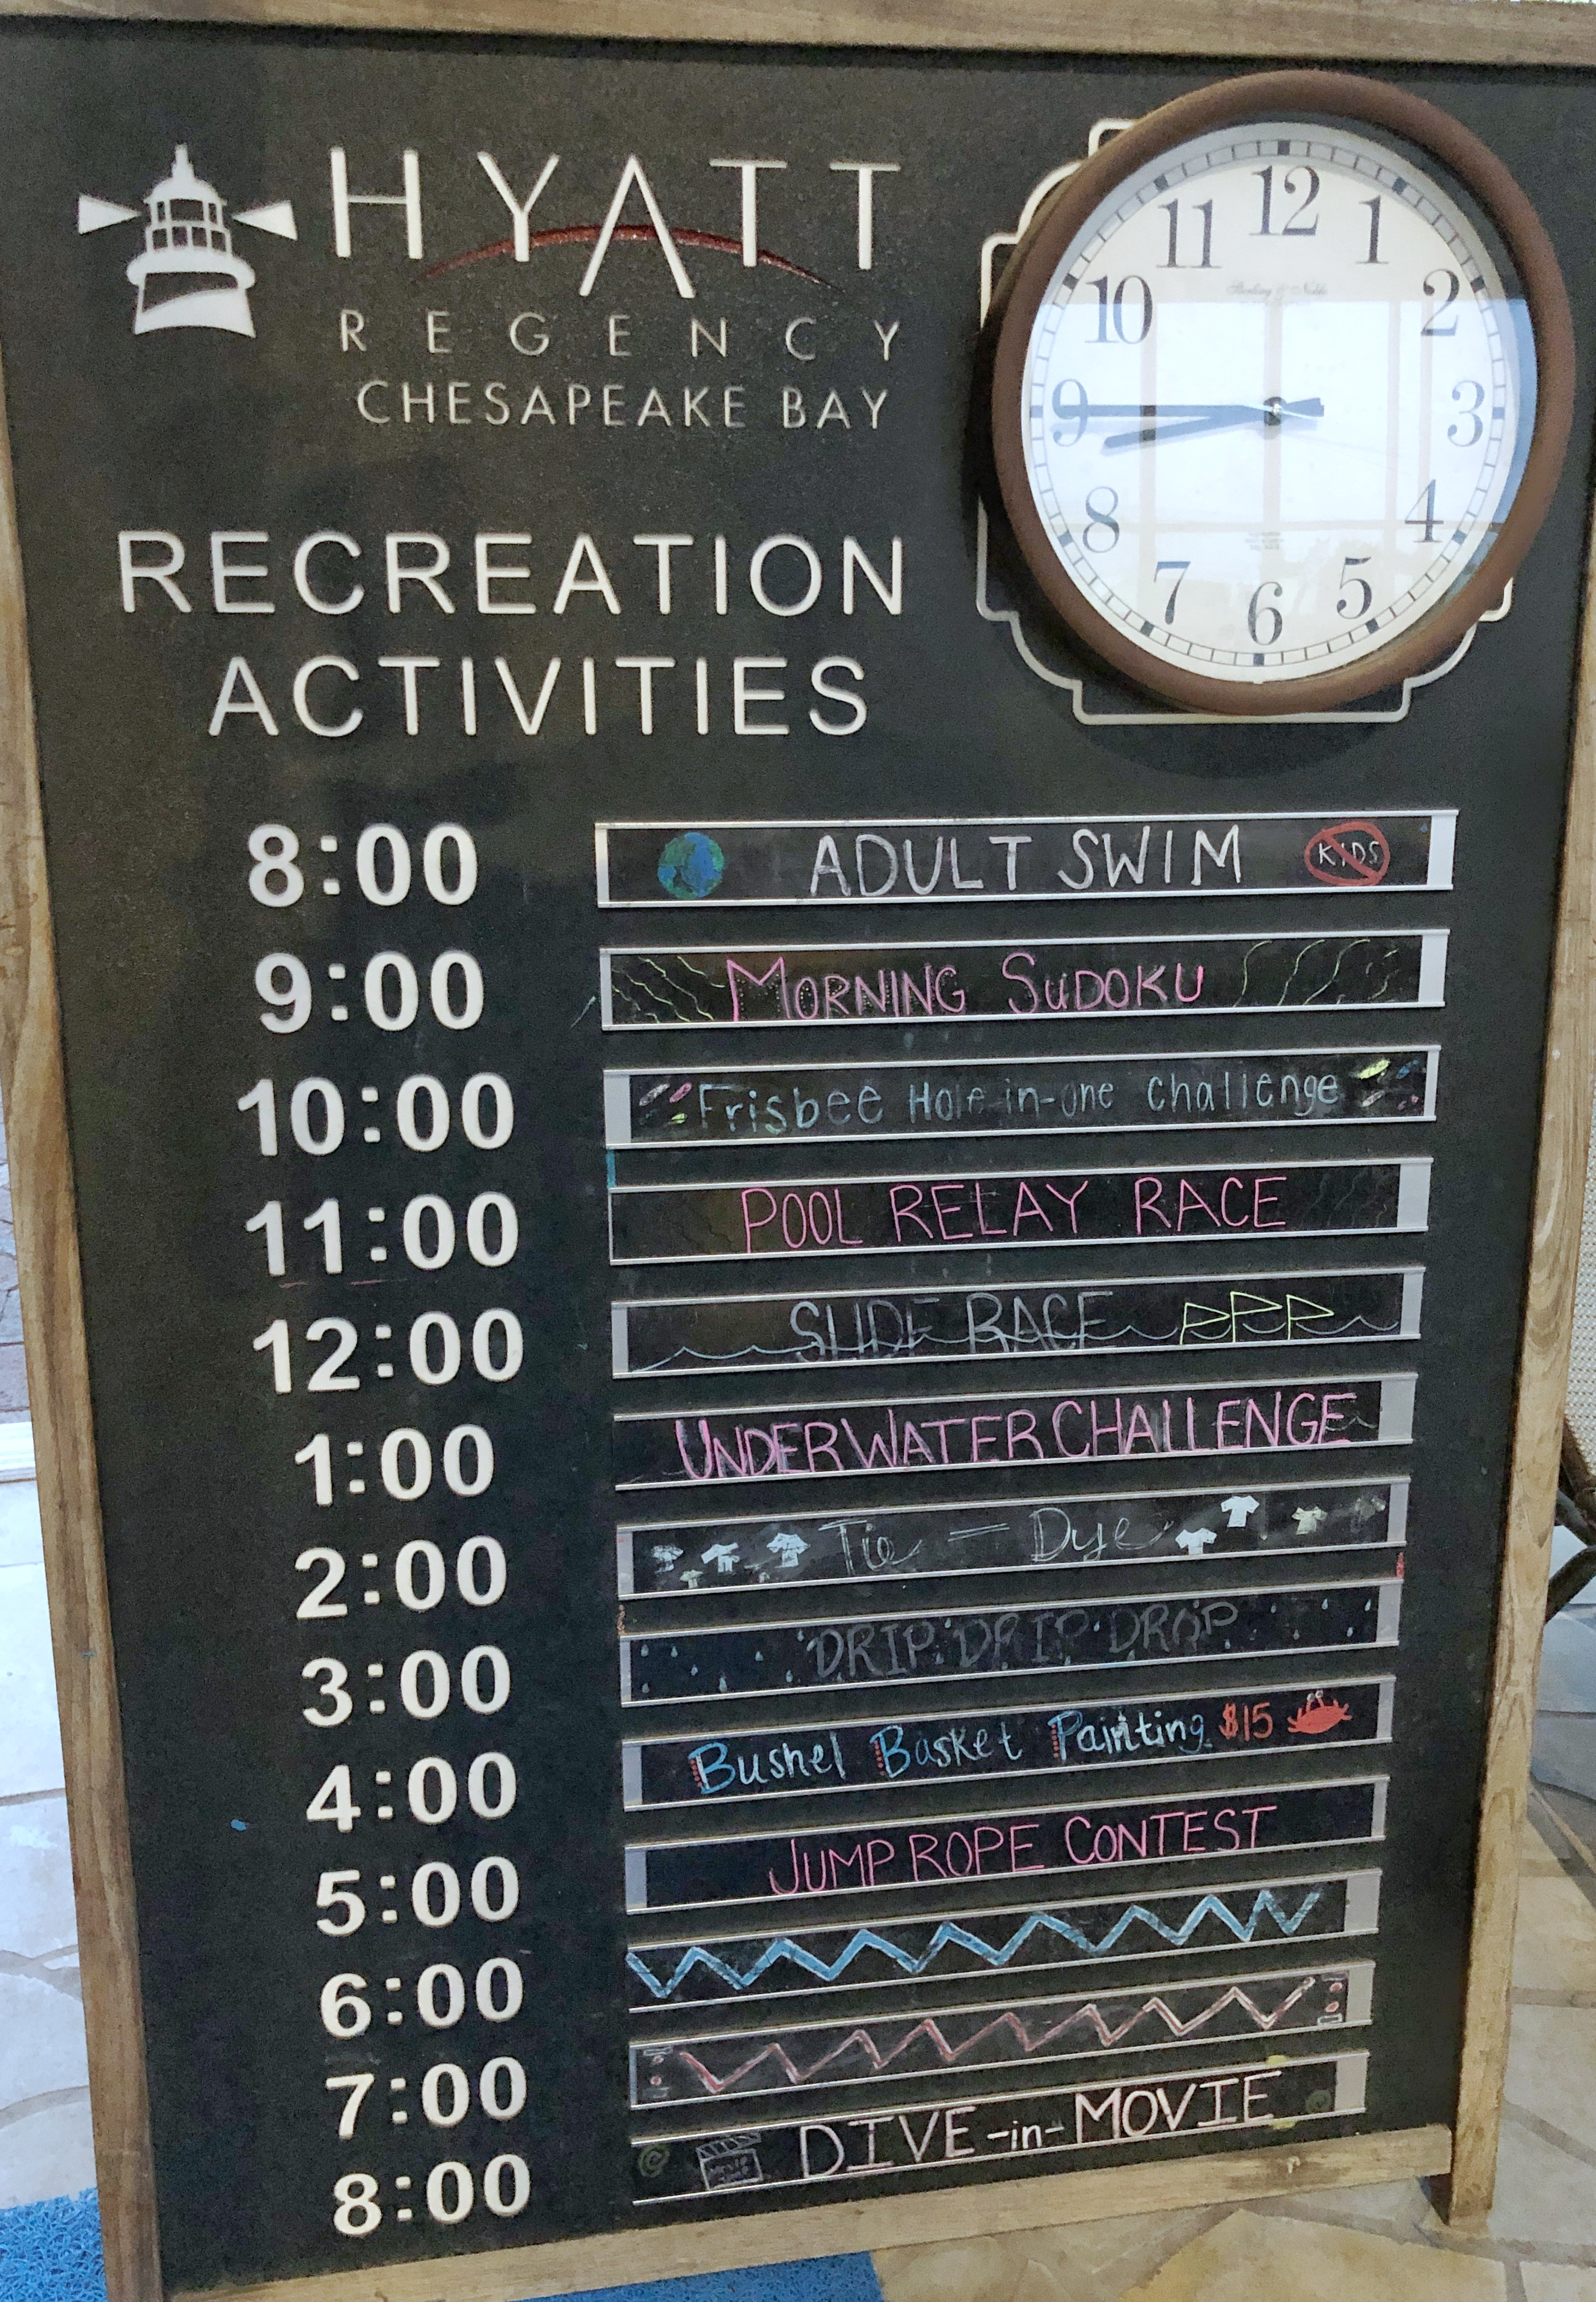 activity board of free activities at the Hyatt Chesapeake